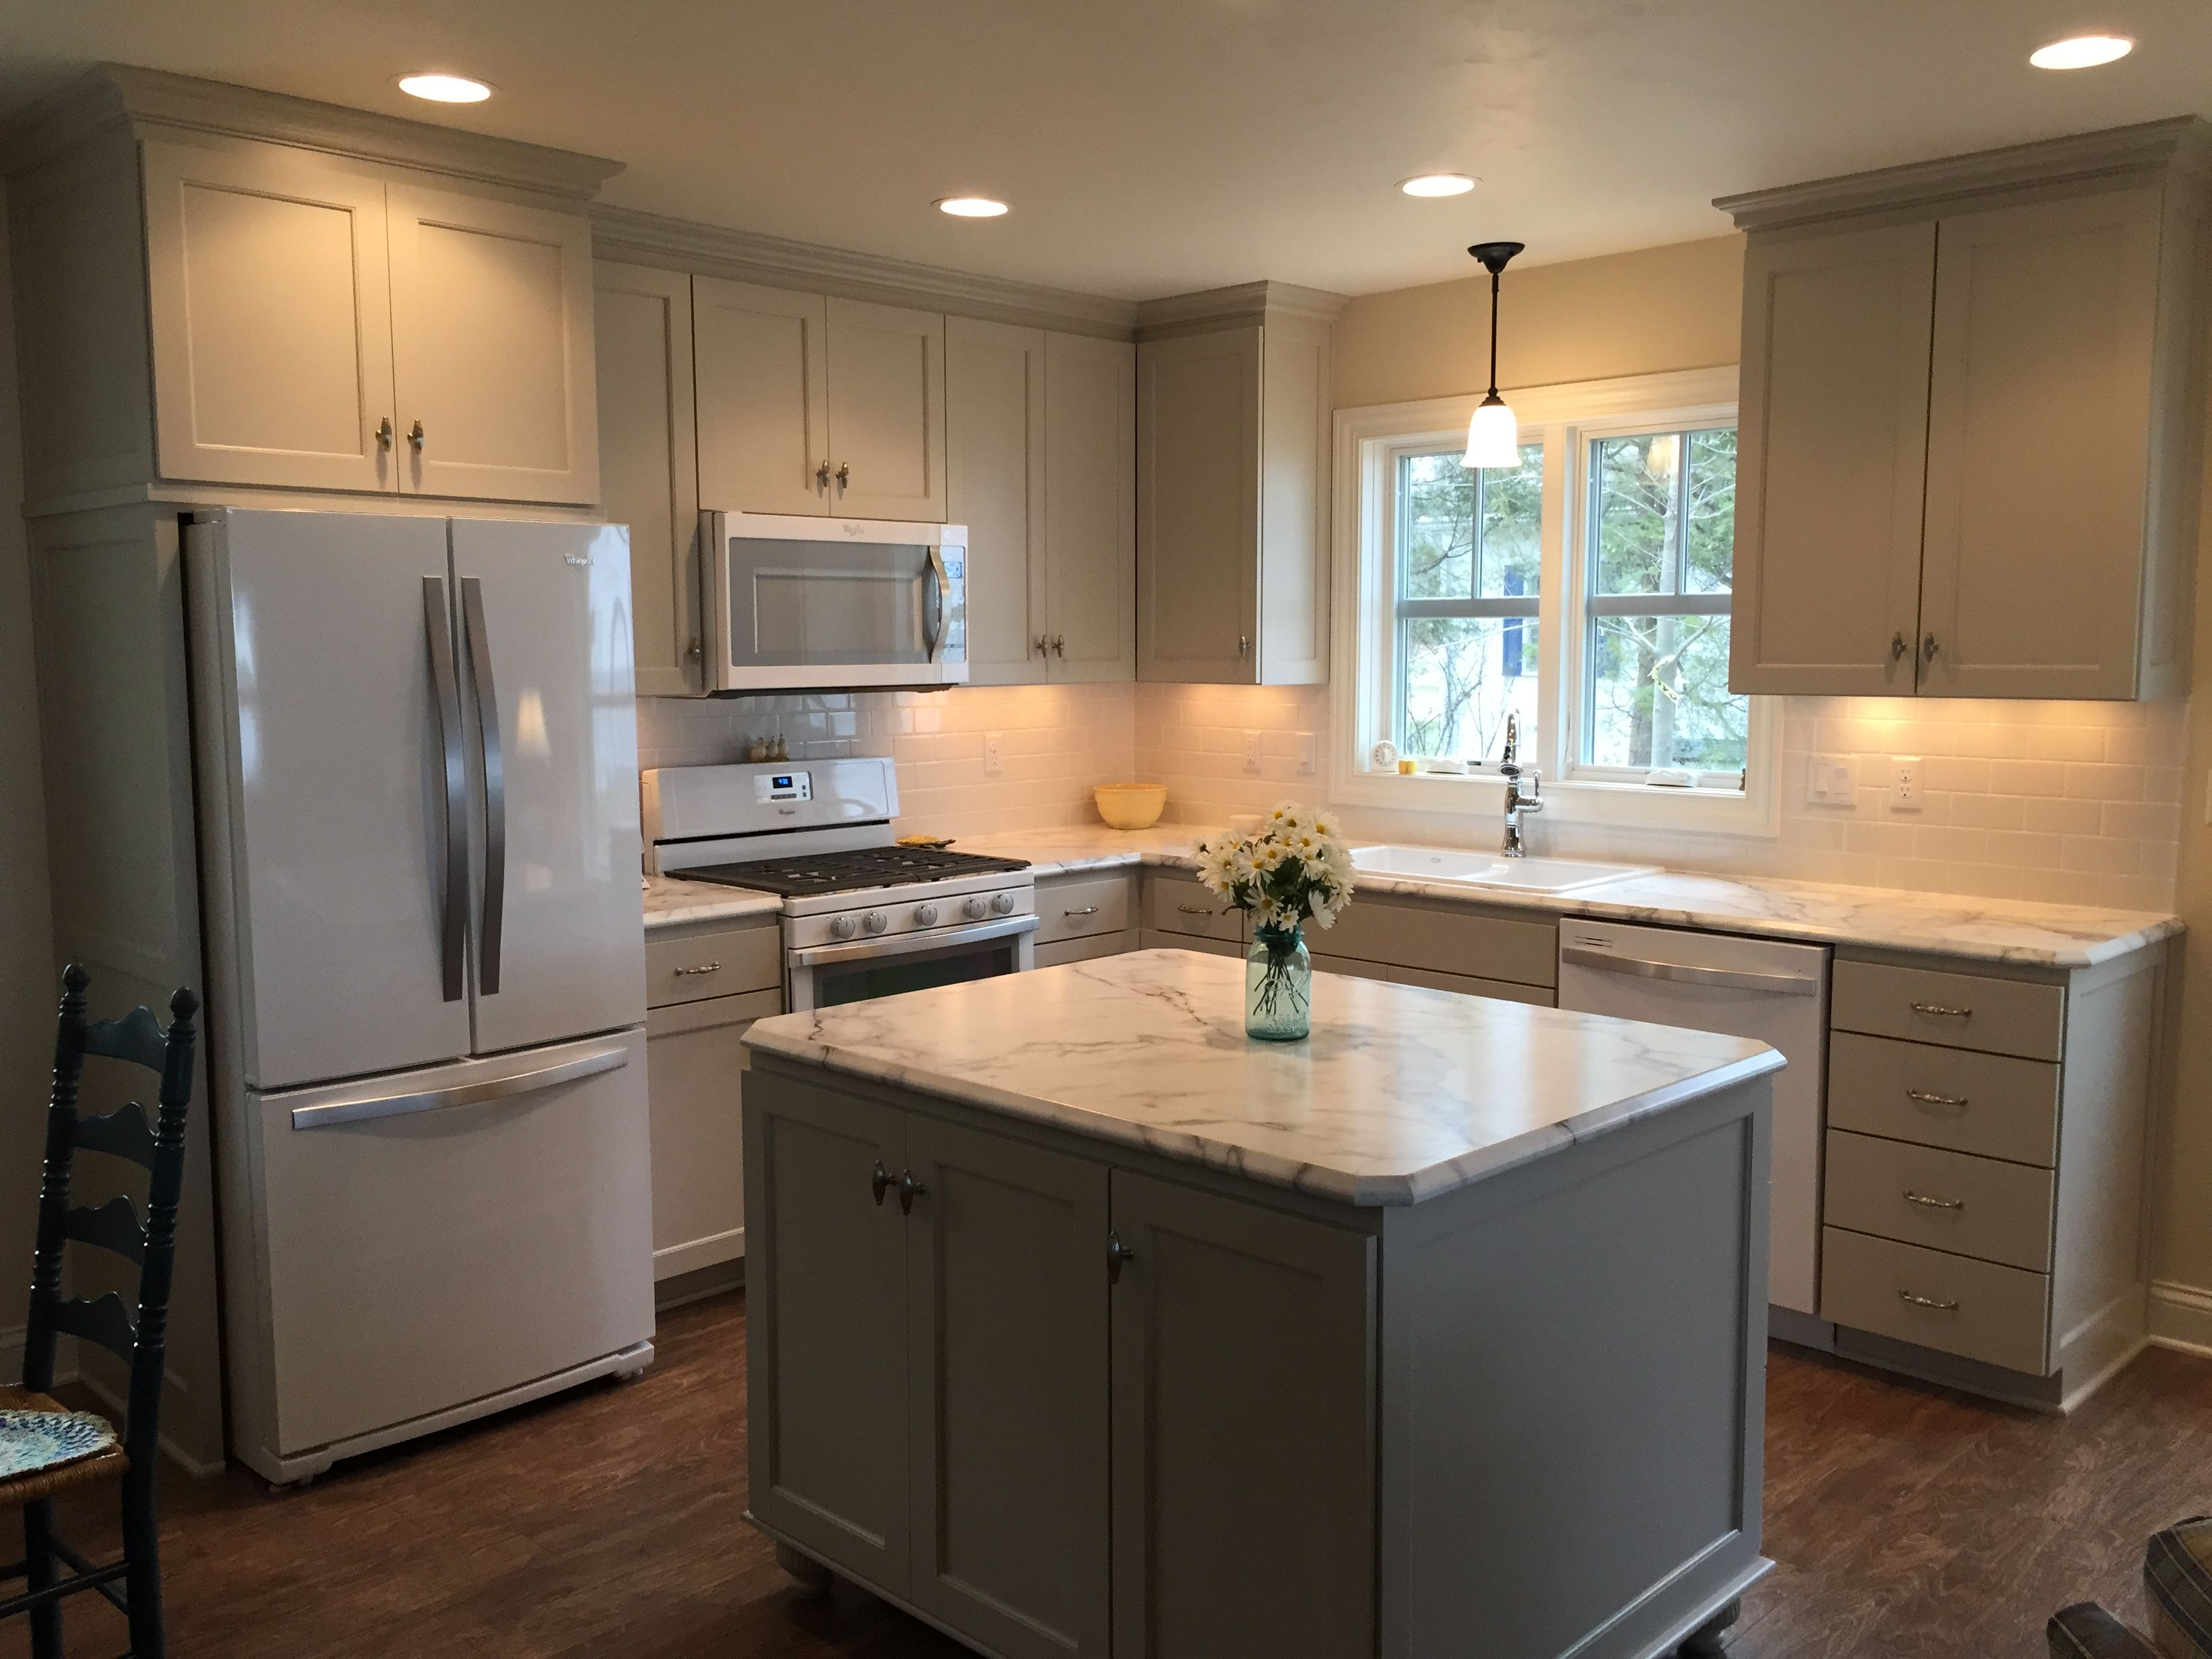 Uncategorized Pictures Of White Kitchens With White Appliances gray white kitchen remodel with touches of wood centsationalgrl my new cottage custom cabinets in bm revere pewter walls gentle cream